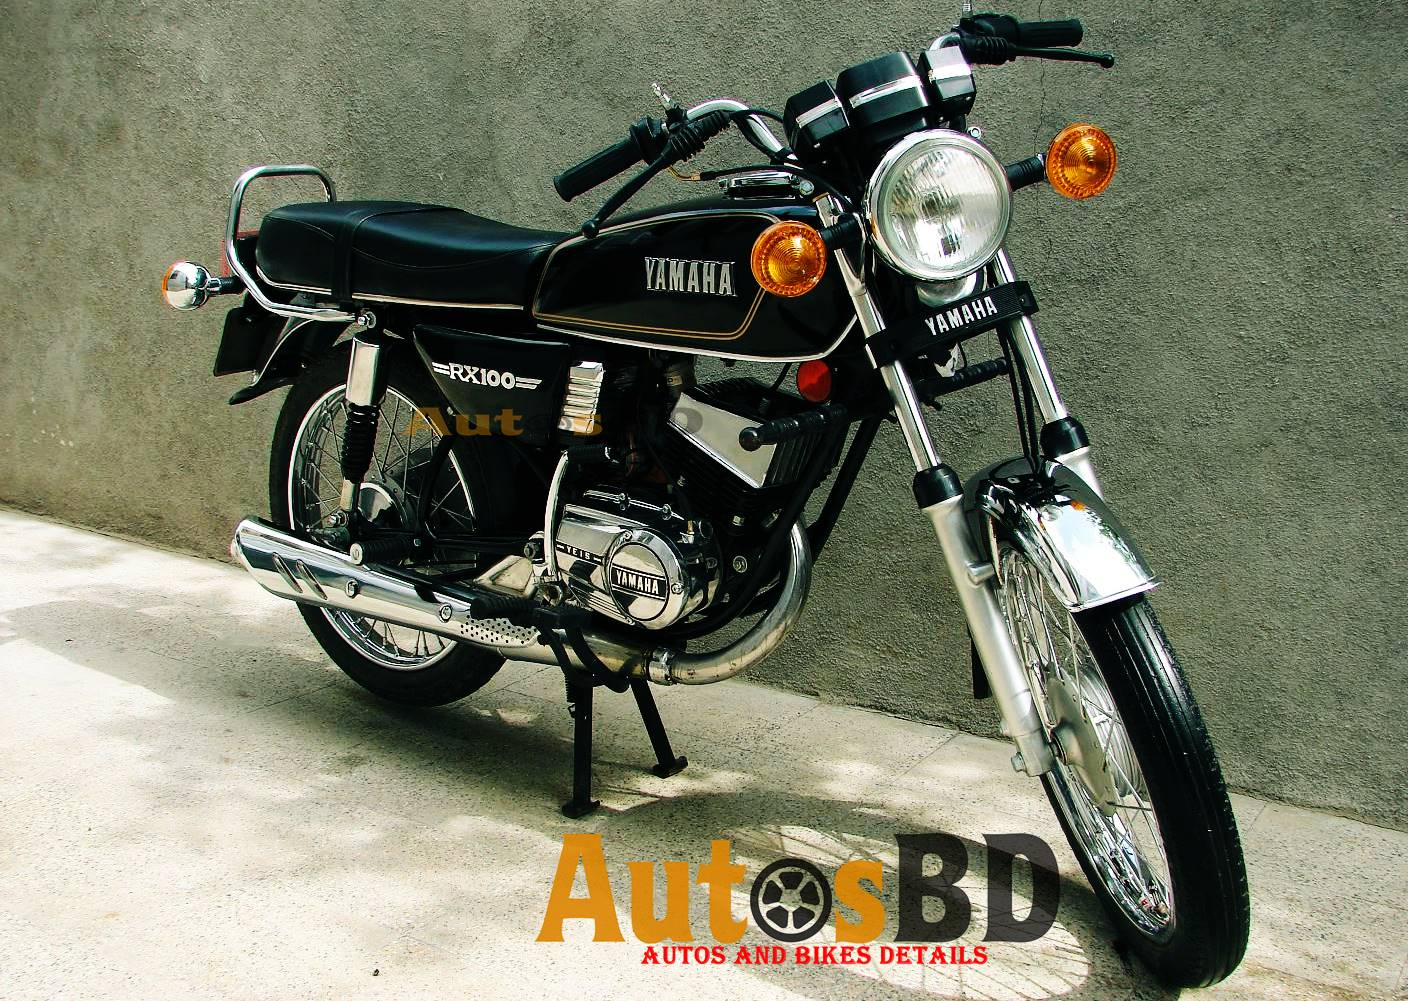 Rx 100 Motorcycle Specification